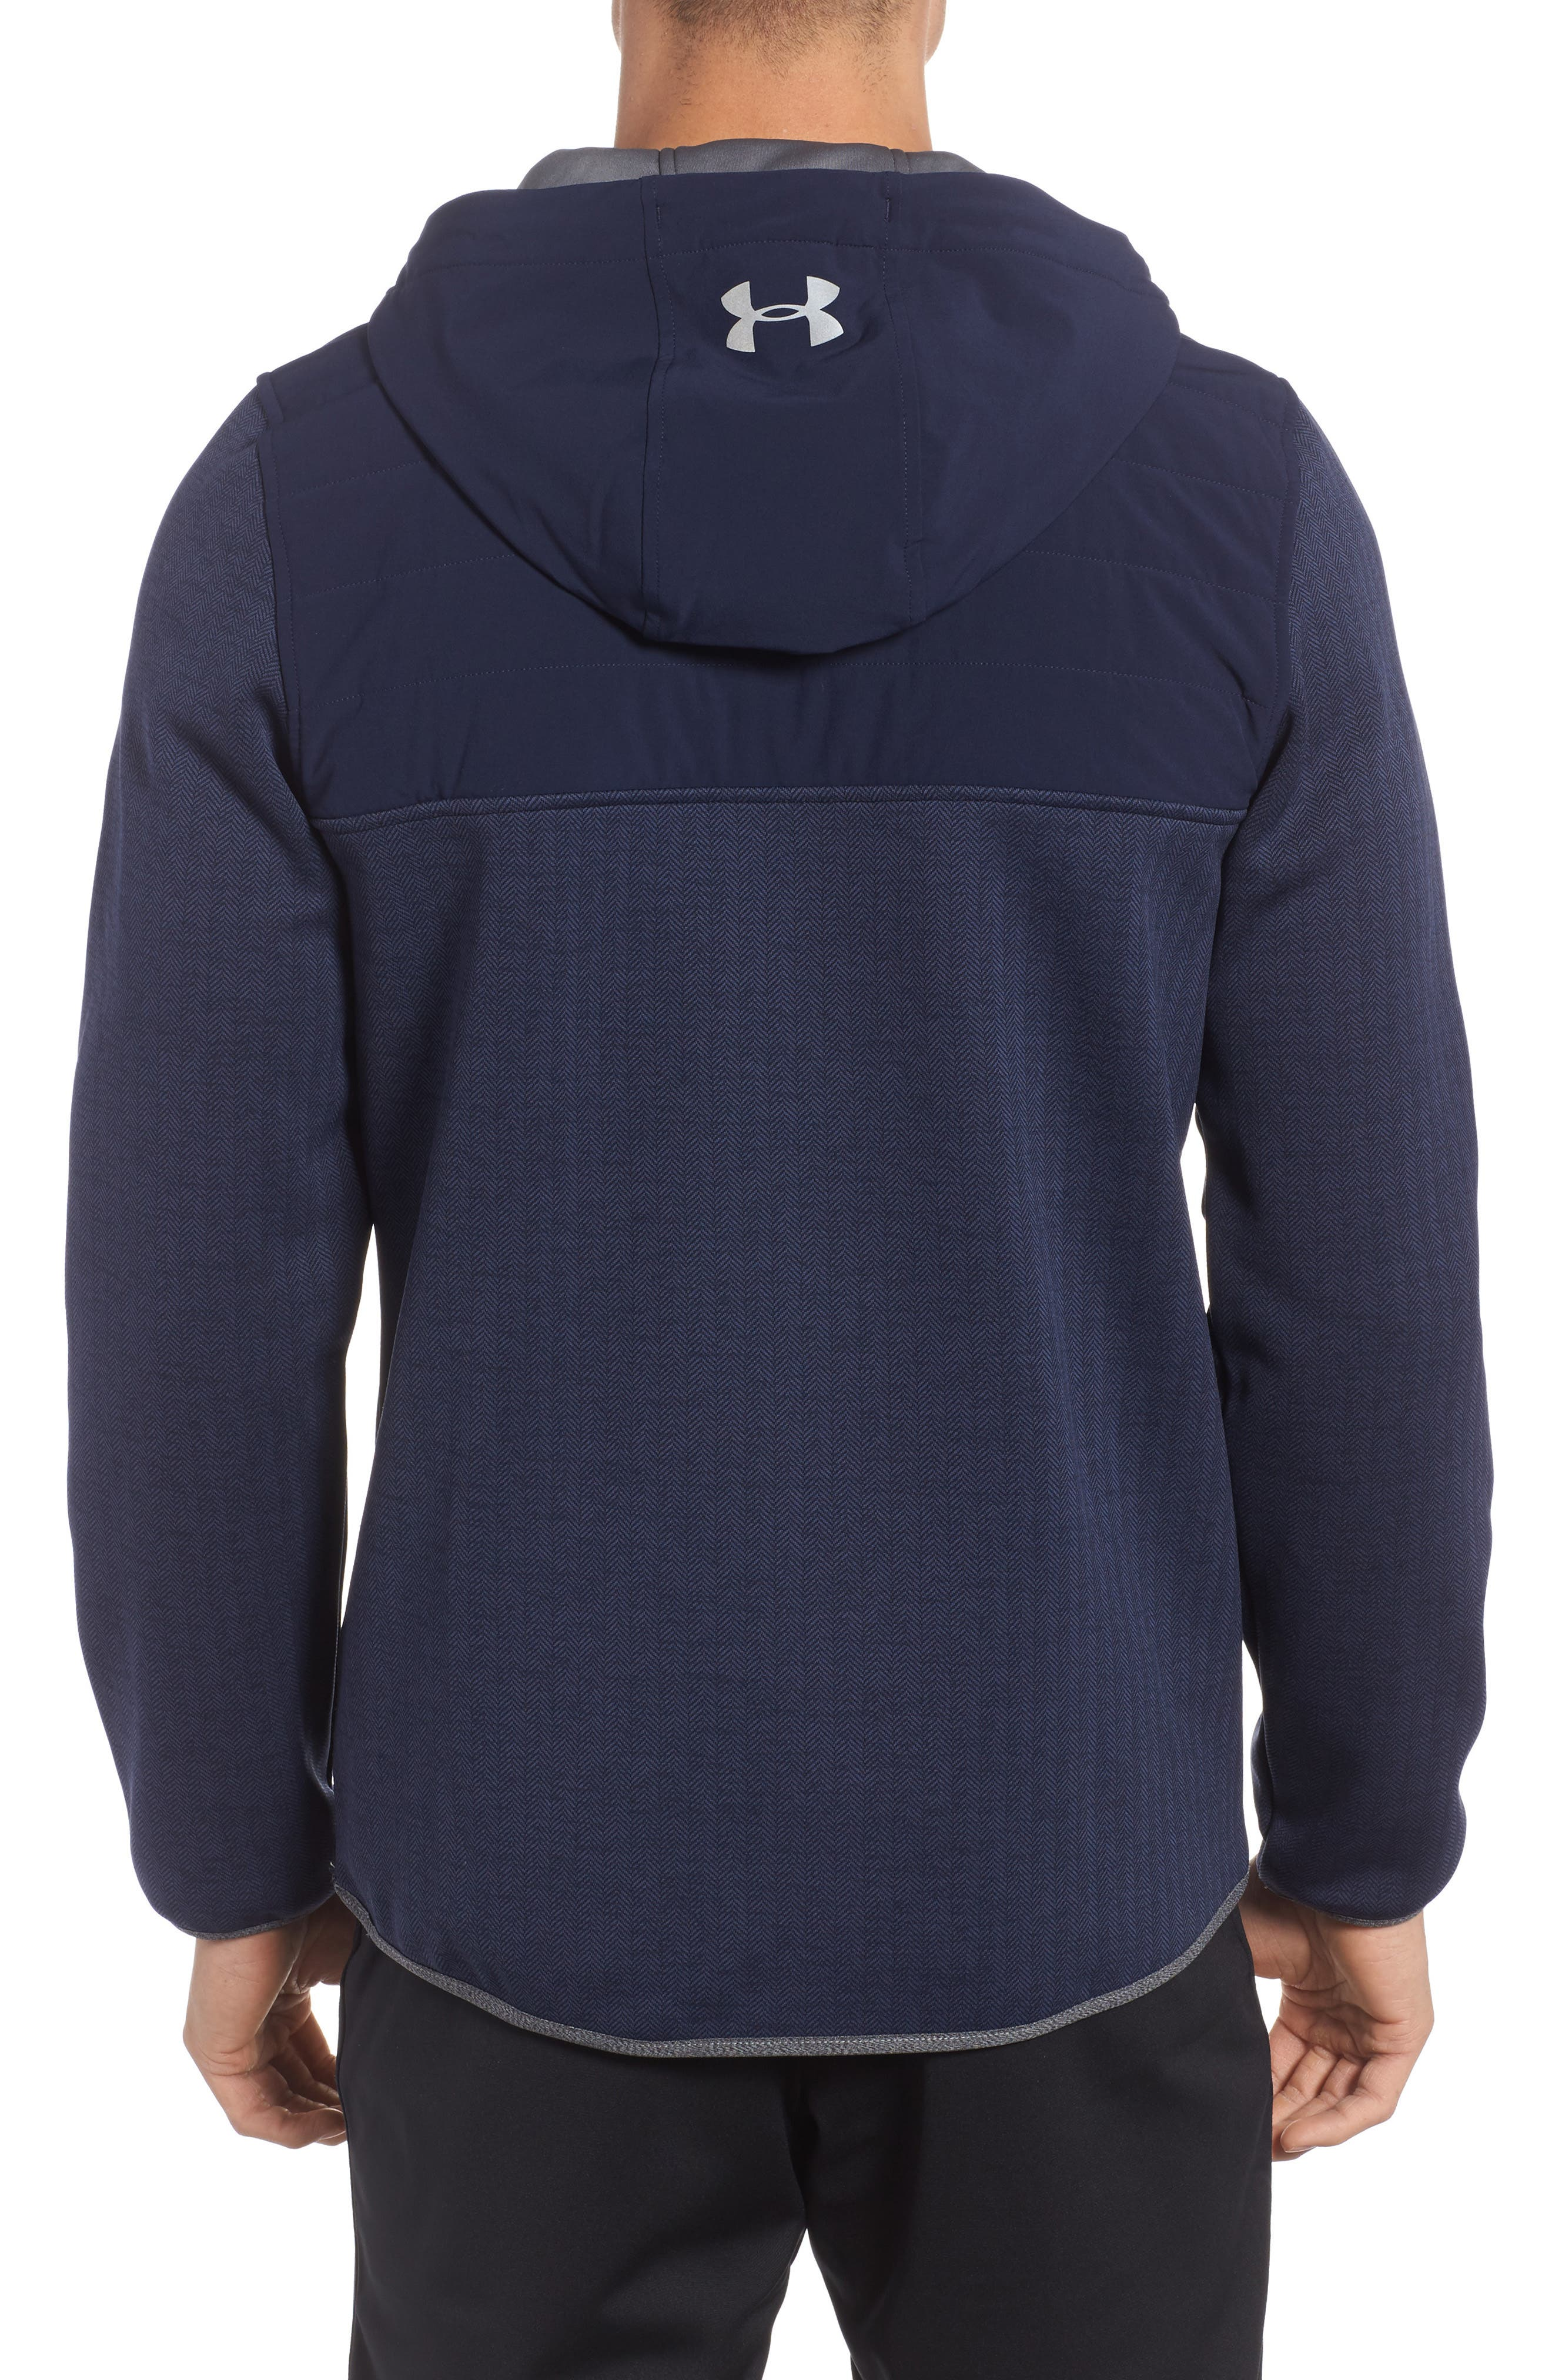 Henley Hoodie,                             Alternate thumbnail 2, color,                             Midnight Navy / Reflective